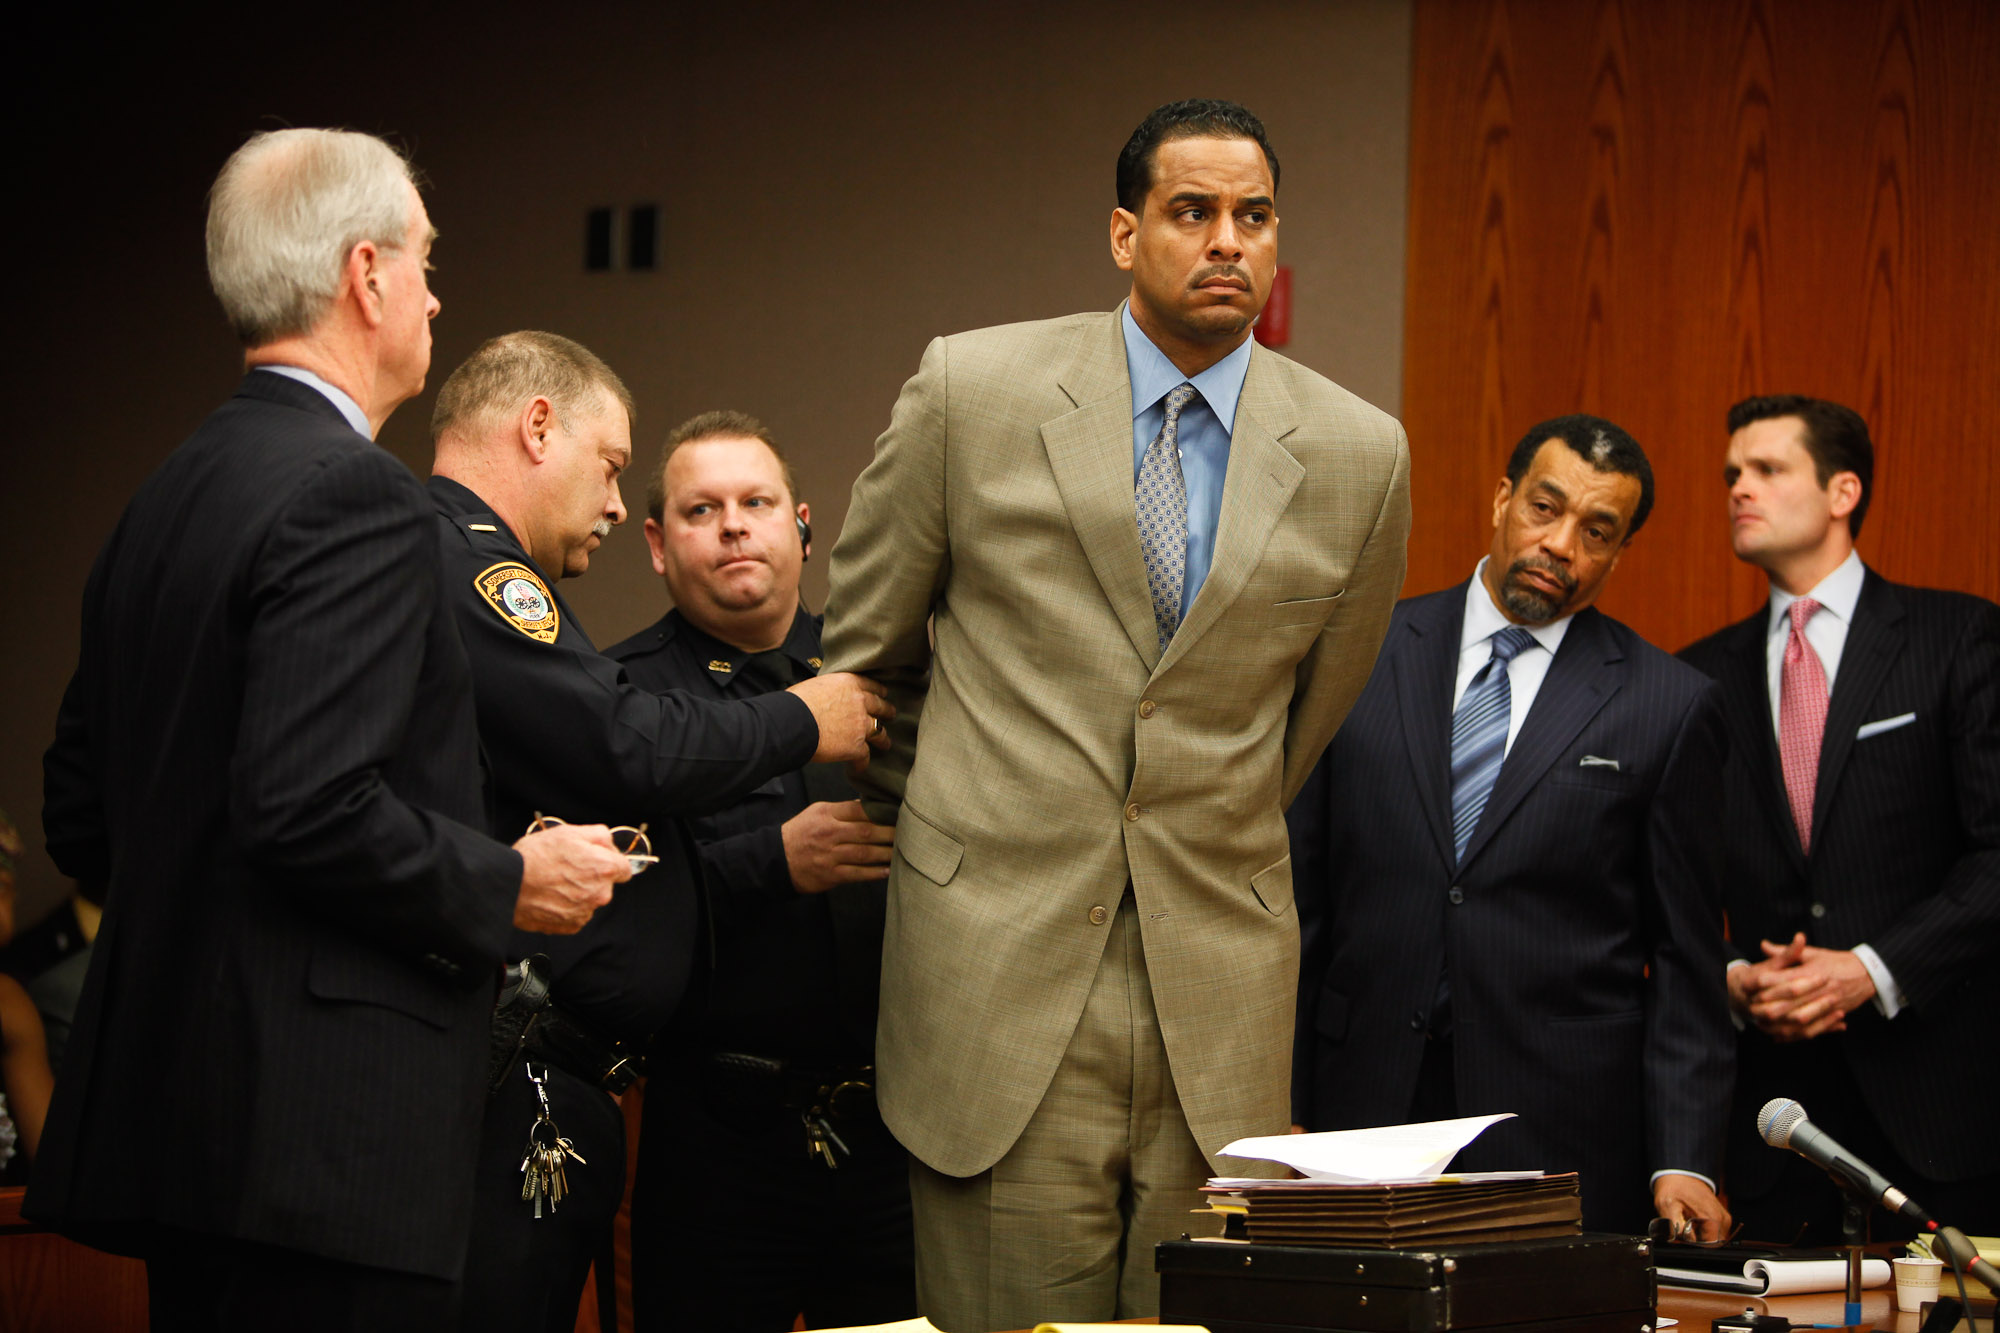 Jayson Williams is handcuffed by Somerset County Sheriffs Officers as he is taken into custody Tuesday, eight years and 10 days after he fatally shot his 55-year-old limousine driver Costas Christofi at his former Hunterdon County estate.Williams, 42 is  sentenced to at least 18 months in prison Tuesday as he appears before Superior Court Judge Edward Coleman.Mr. Williams appears with his attorneys Joseph Hayden and Billy Martin.Williams pleaded guilty Jan. 11 to a downgraded charge of aggravated assault under the terms of a plea agreement reached Dec. 24 with the State Attorney General's Office, which took over the case from the Hunterdon County Prosecutor's Office.Williams, who was awaiting retrial on a reckless manslaughter charge, also waived his right for post-conviction relief, a legal motion to set aside a conviction before filing an appeal.